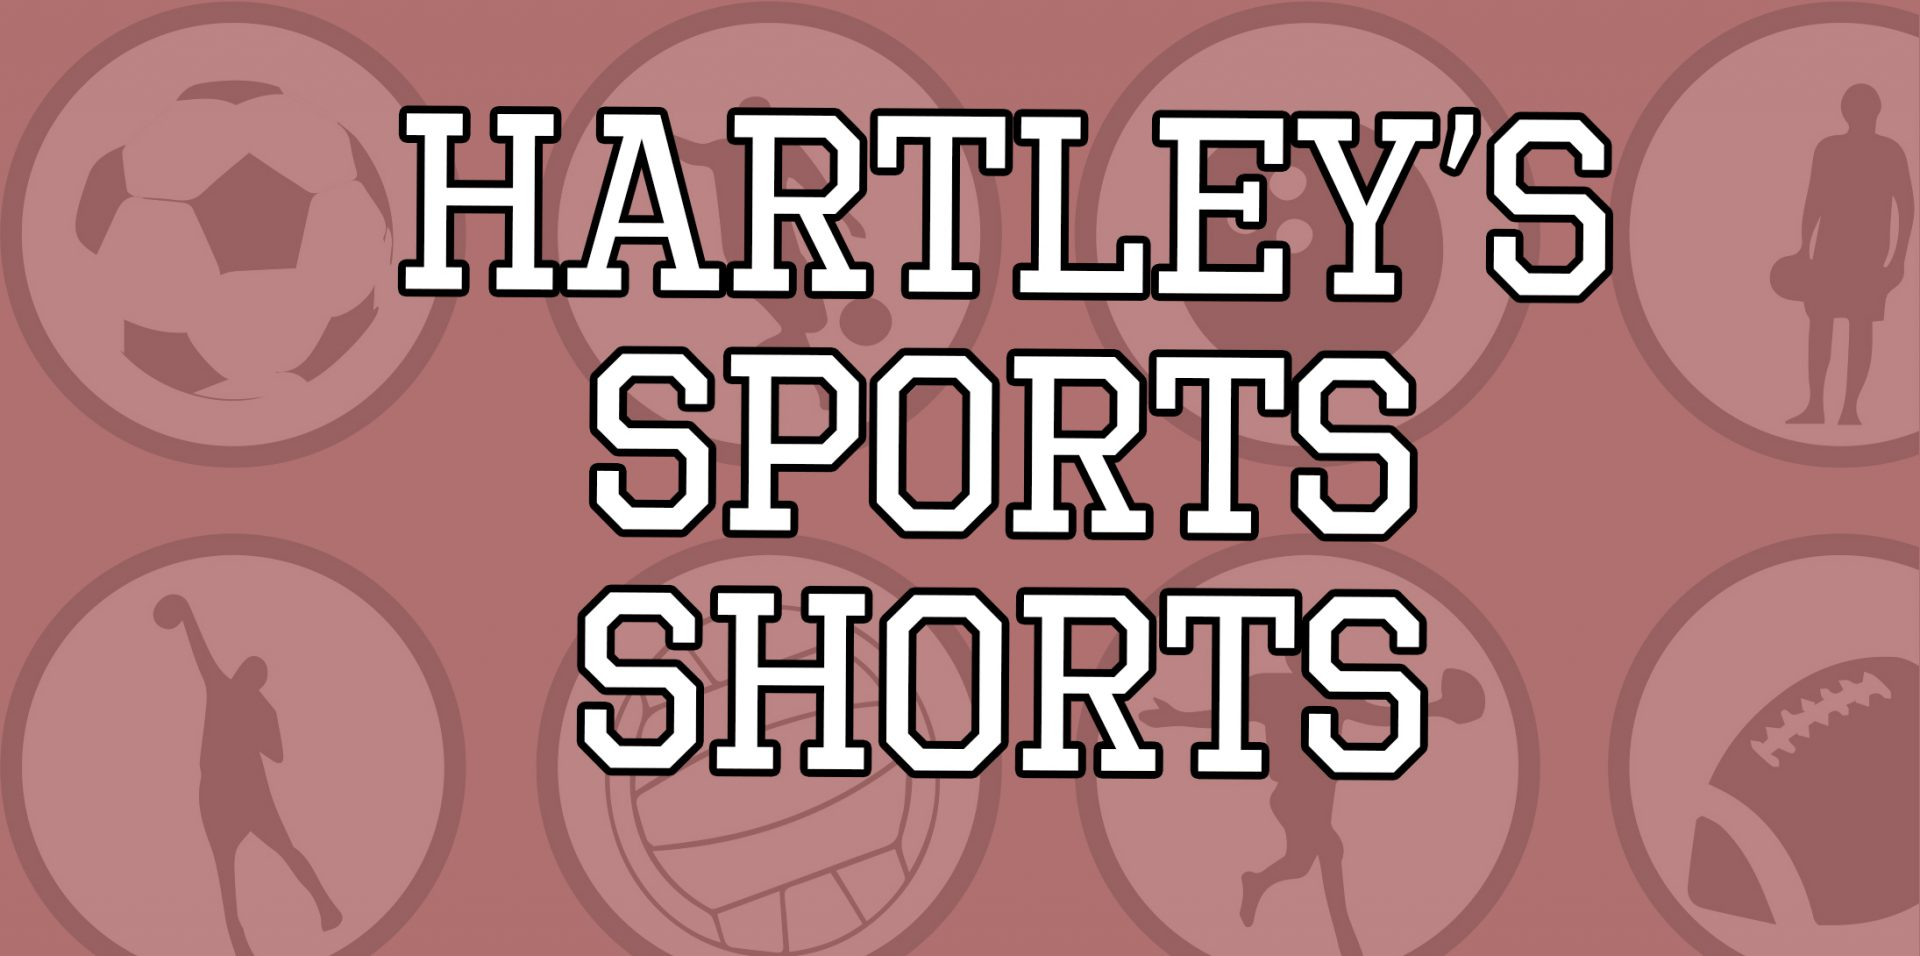 Hartley sports pants.  Tuesday 31 August